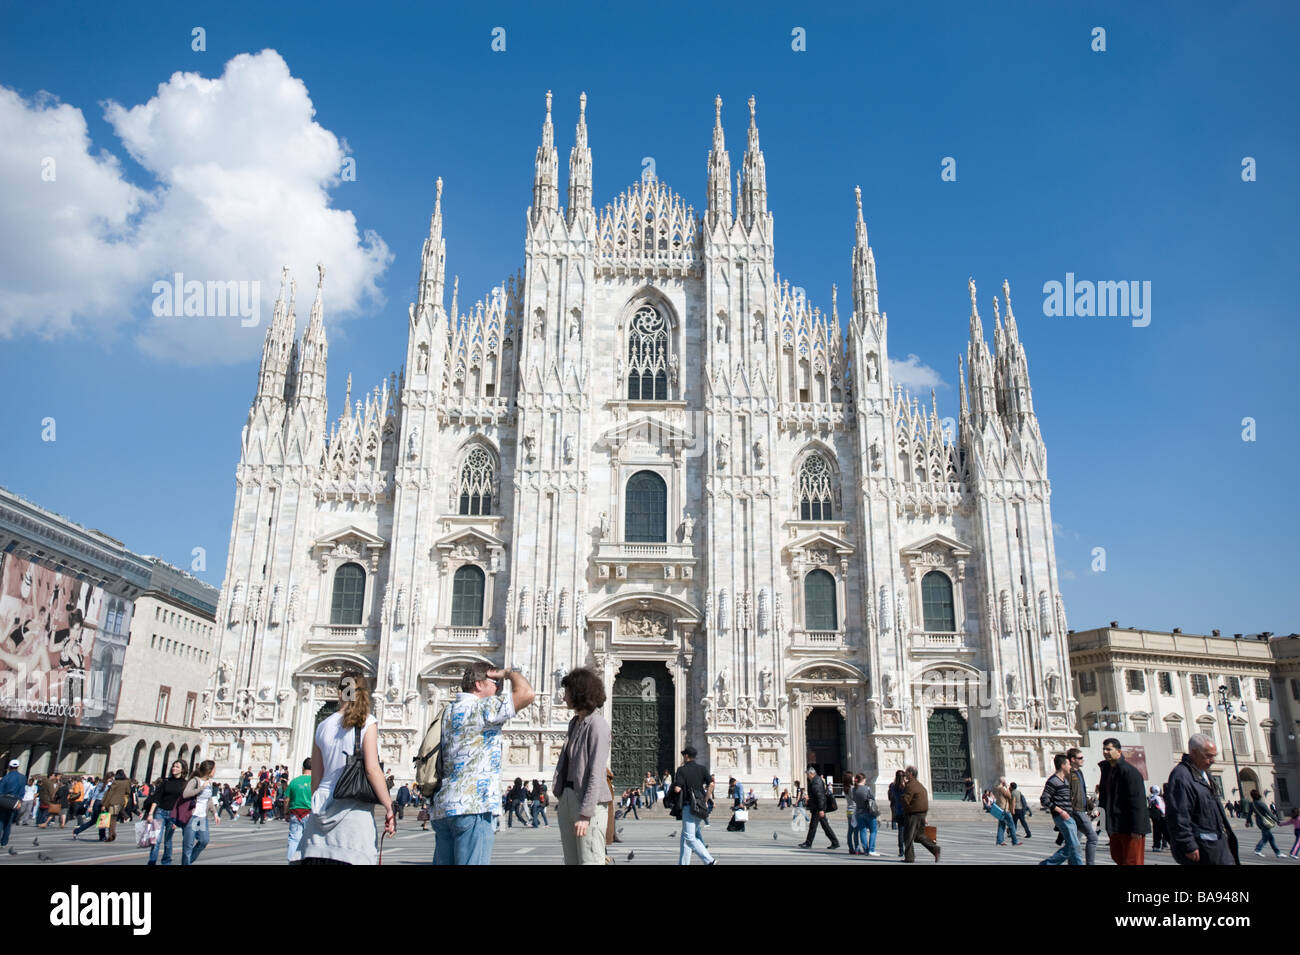 The Cathedral square in Milan, Italy. - Stock Image